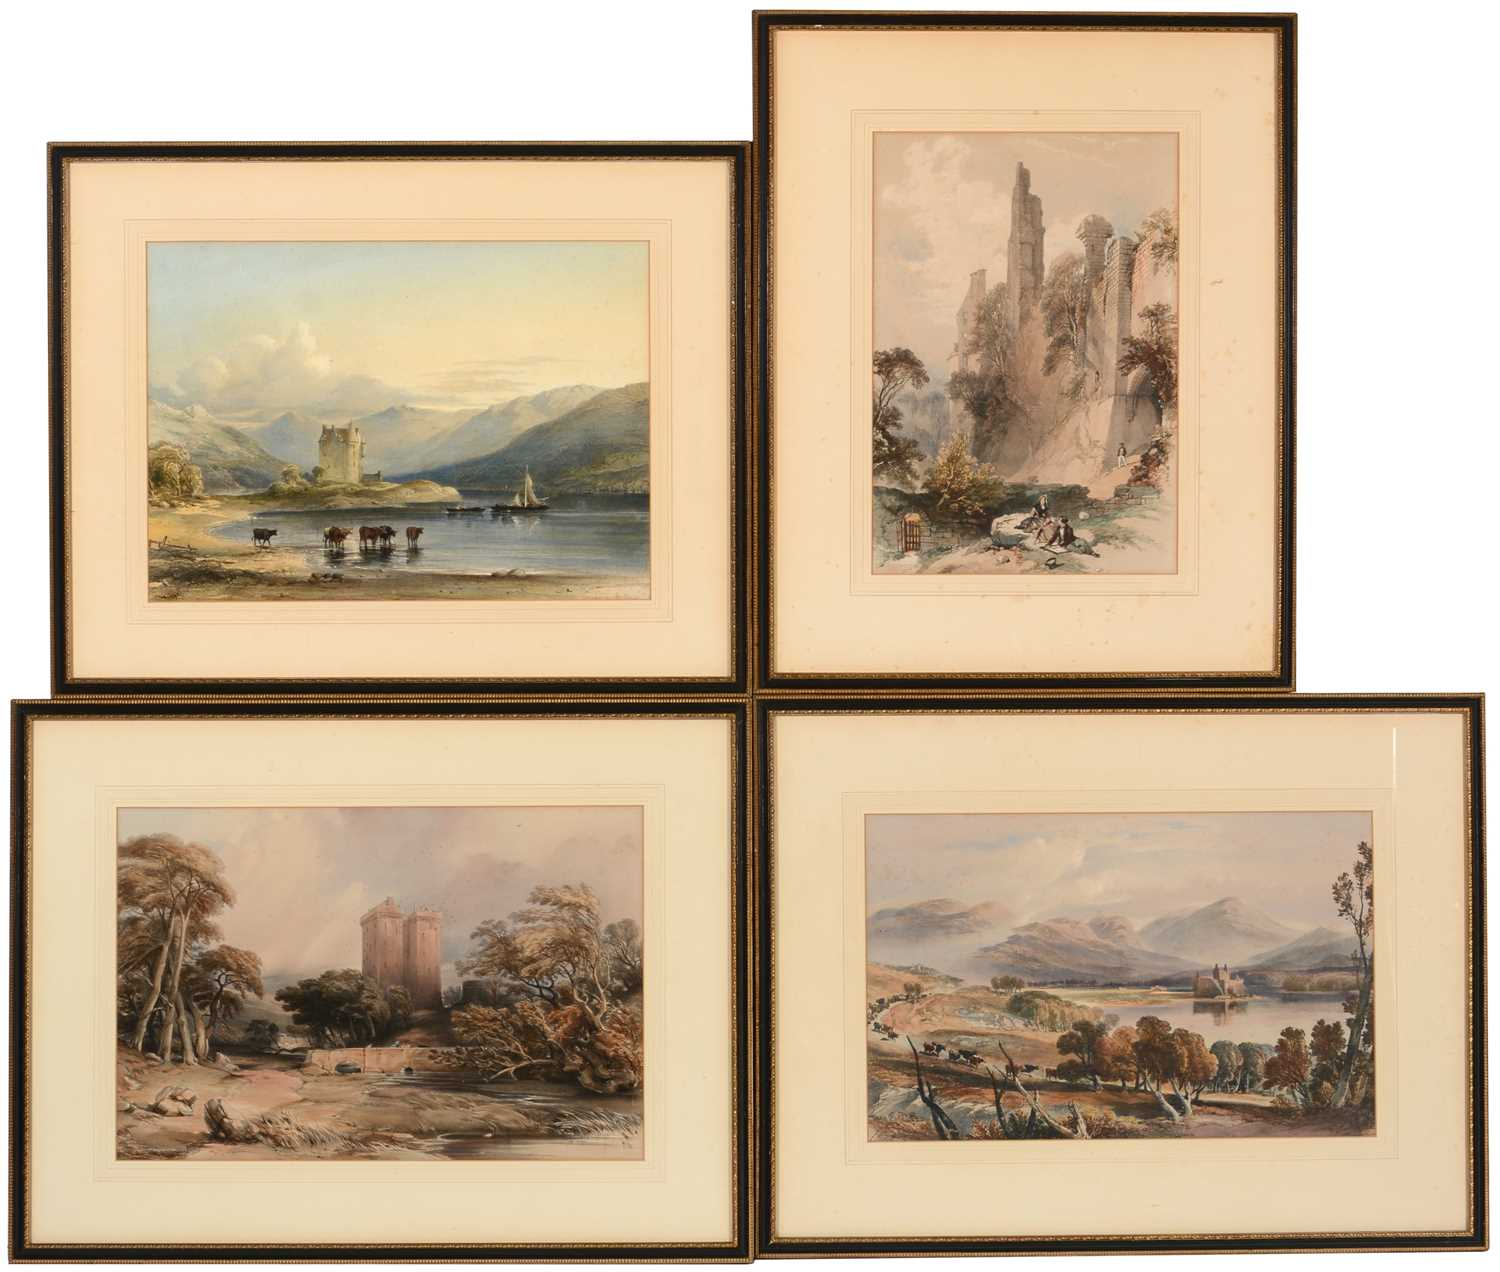 Lot 612 - After W L Leitch and three others - Lithographs